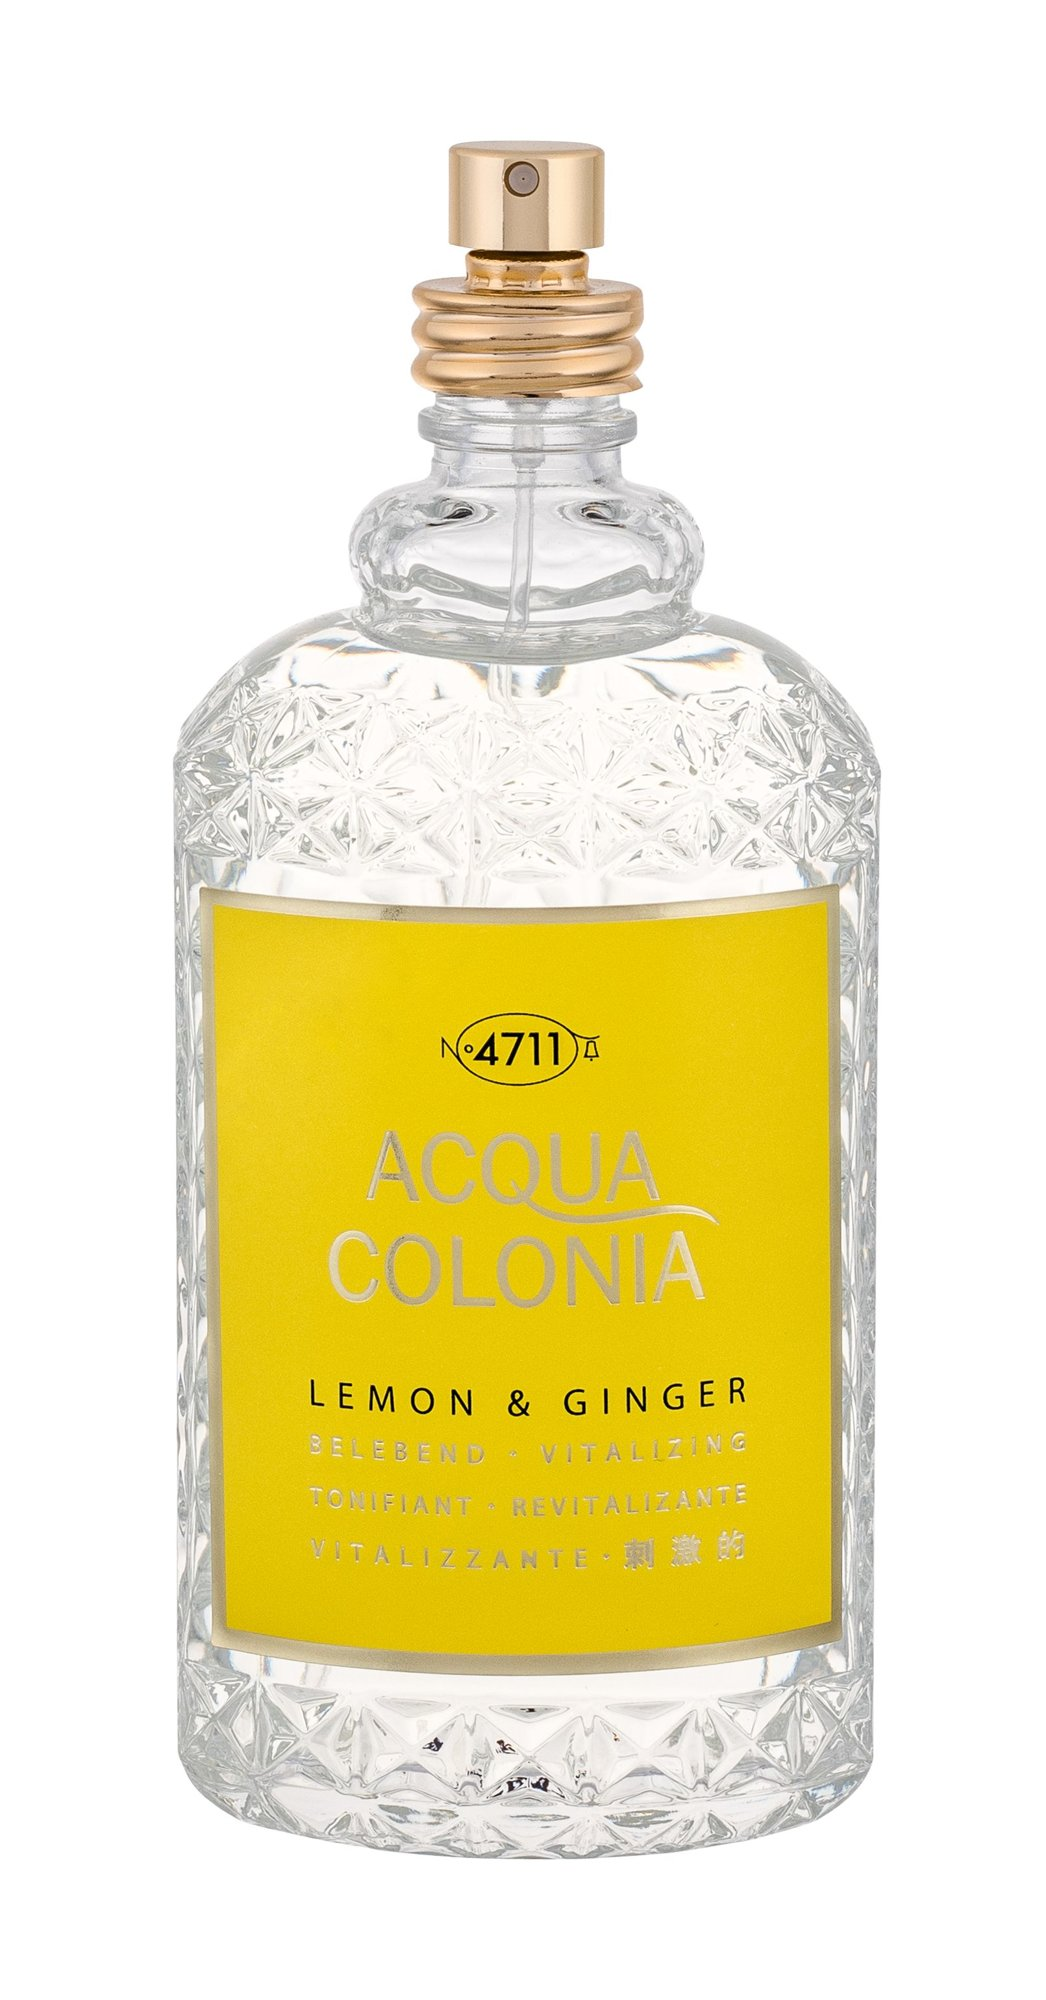 4711 Acqua Colonia Lemon & Ginger Eau de Cologne 170ml